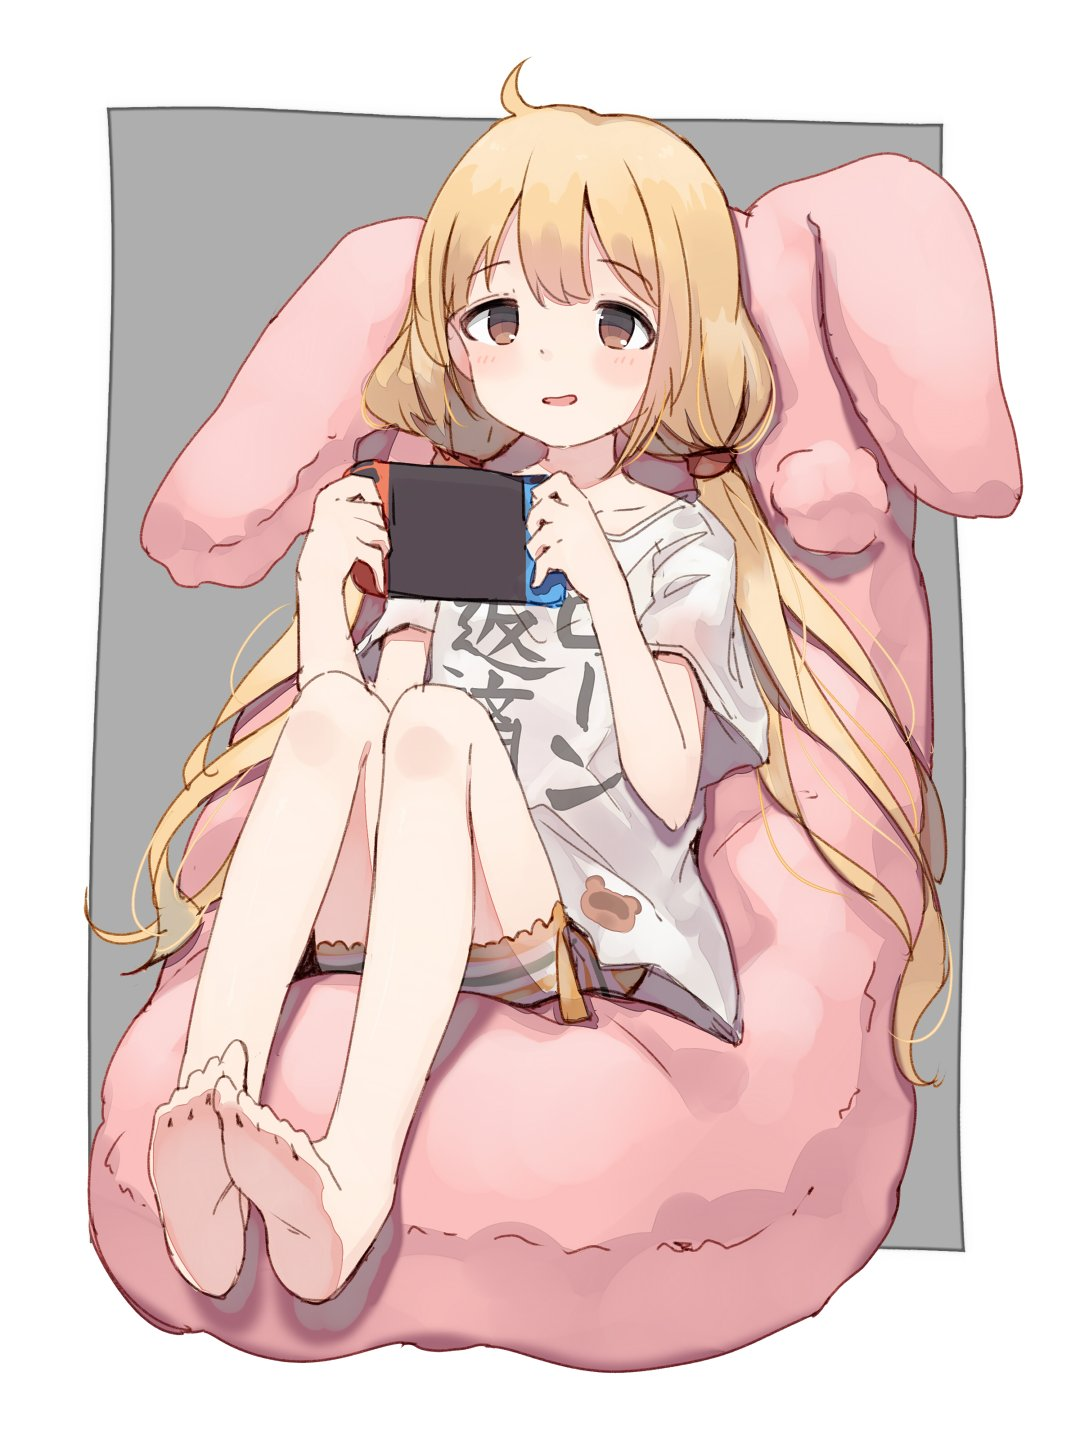 1girl bangs bare_legs barefoot bean_bag bike_shorts blonde_hair brown_eyes clothes_writing eyebrows_visible_through_hair feet full_body futaba_anzu grey_background handheld_game_console highres holding_handheld_game_console idolmaster idolmaster_cinderella_girls long_hair looking_at_viewer low_twintails nintendo_switch parted_lips shirt shone short_sleeves simple_background sitting soles solo striped striped_bike_shorts t-shirt twintails very_long_hair white_shirt